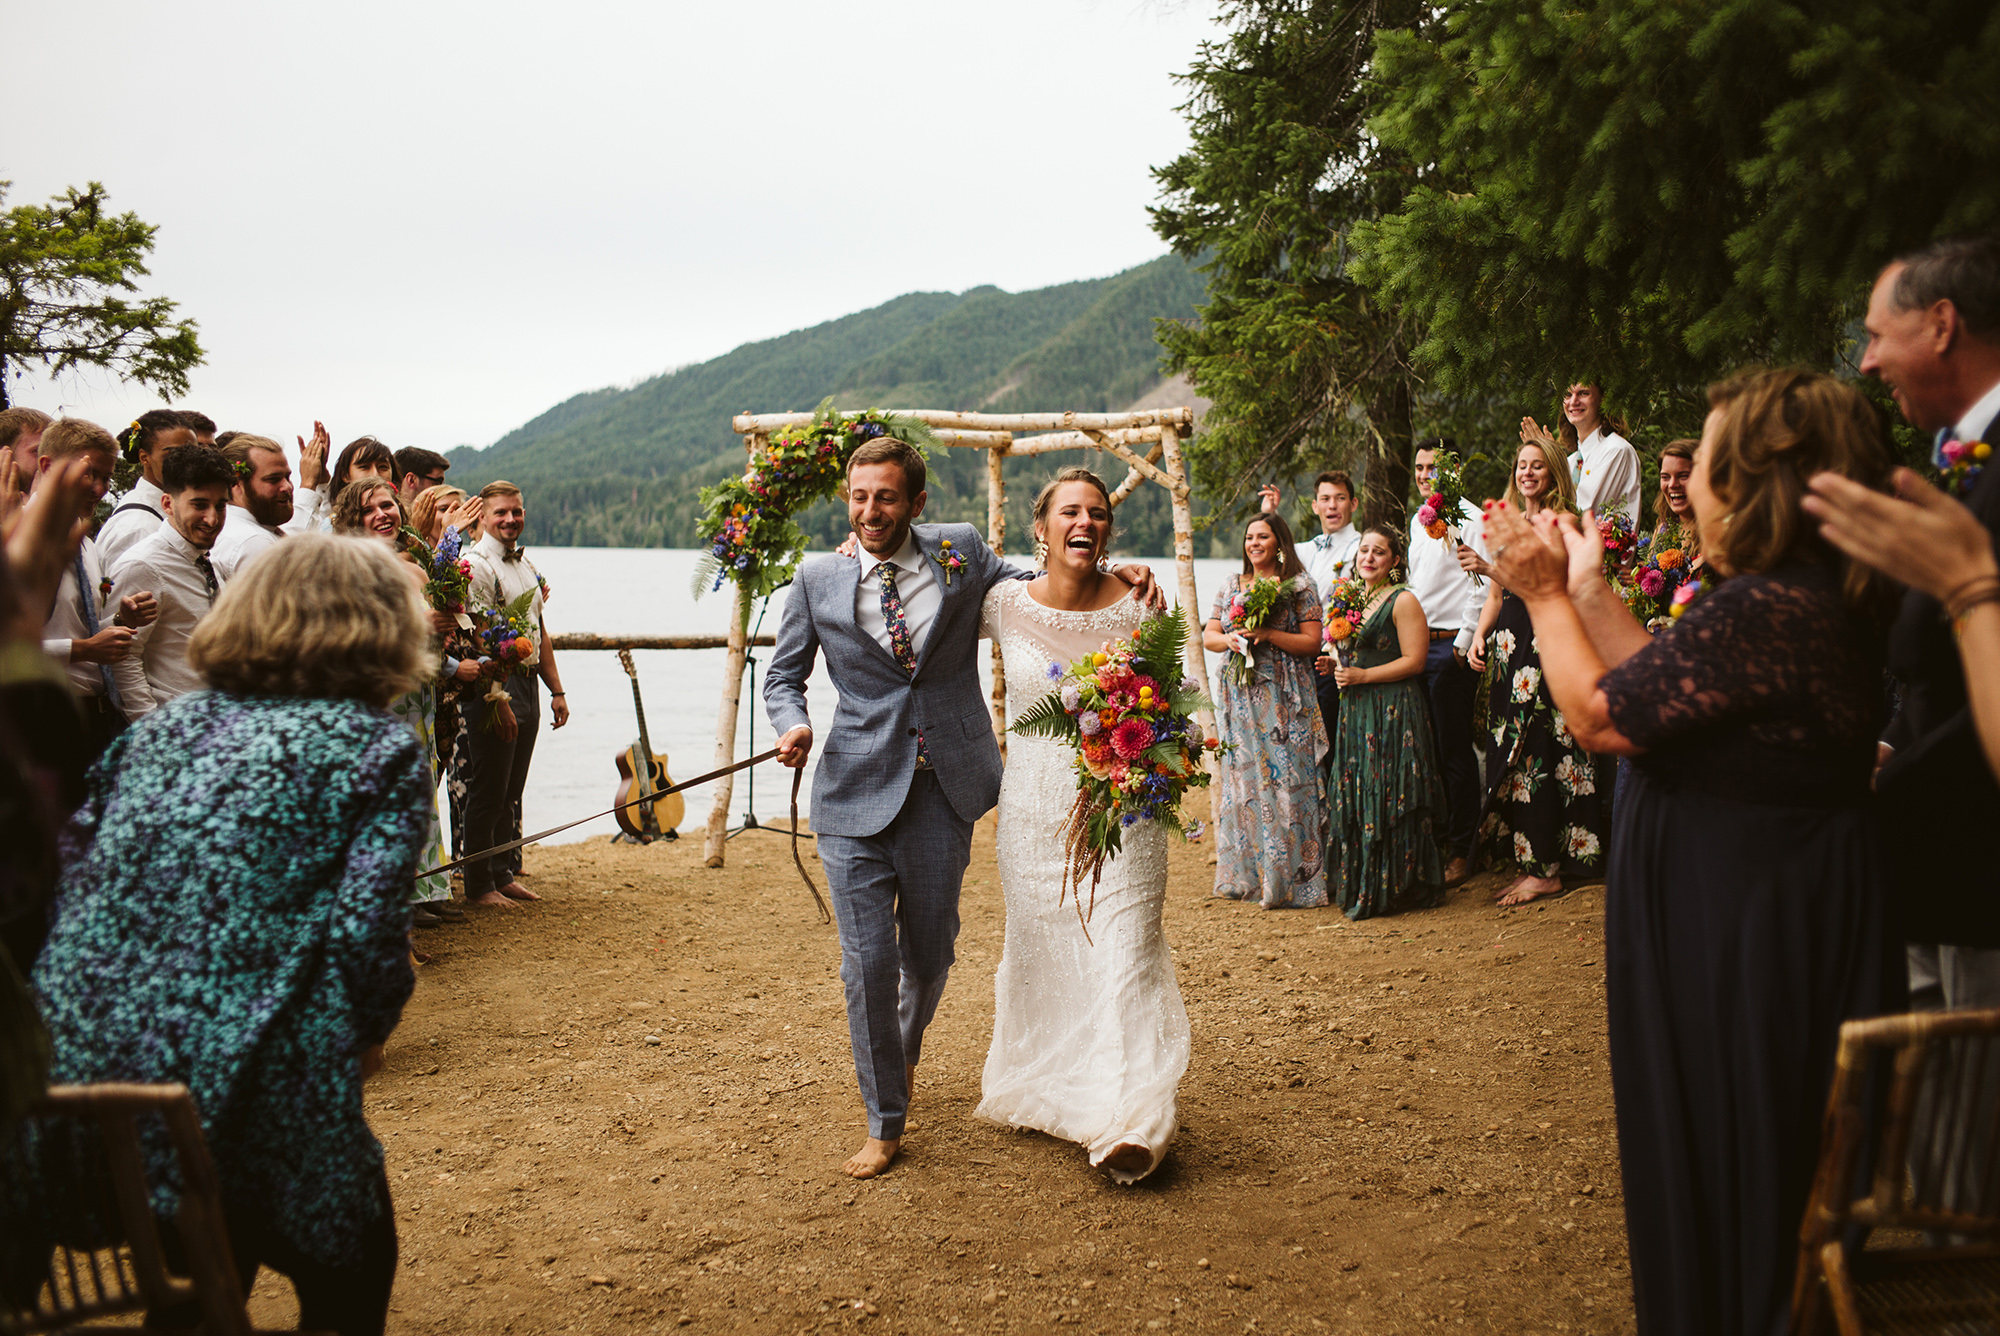 A wedding couple is walking down the aisle with their guests cheering at them.